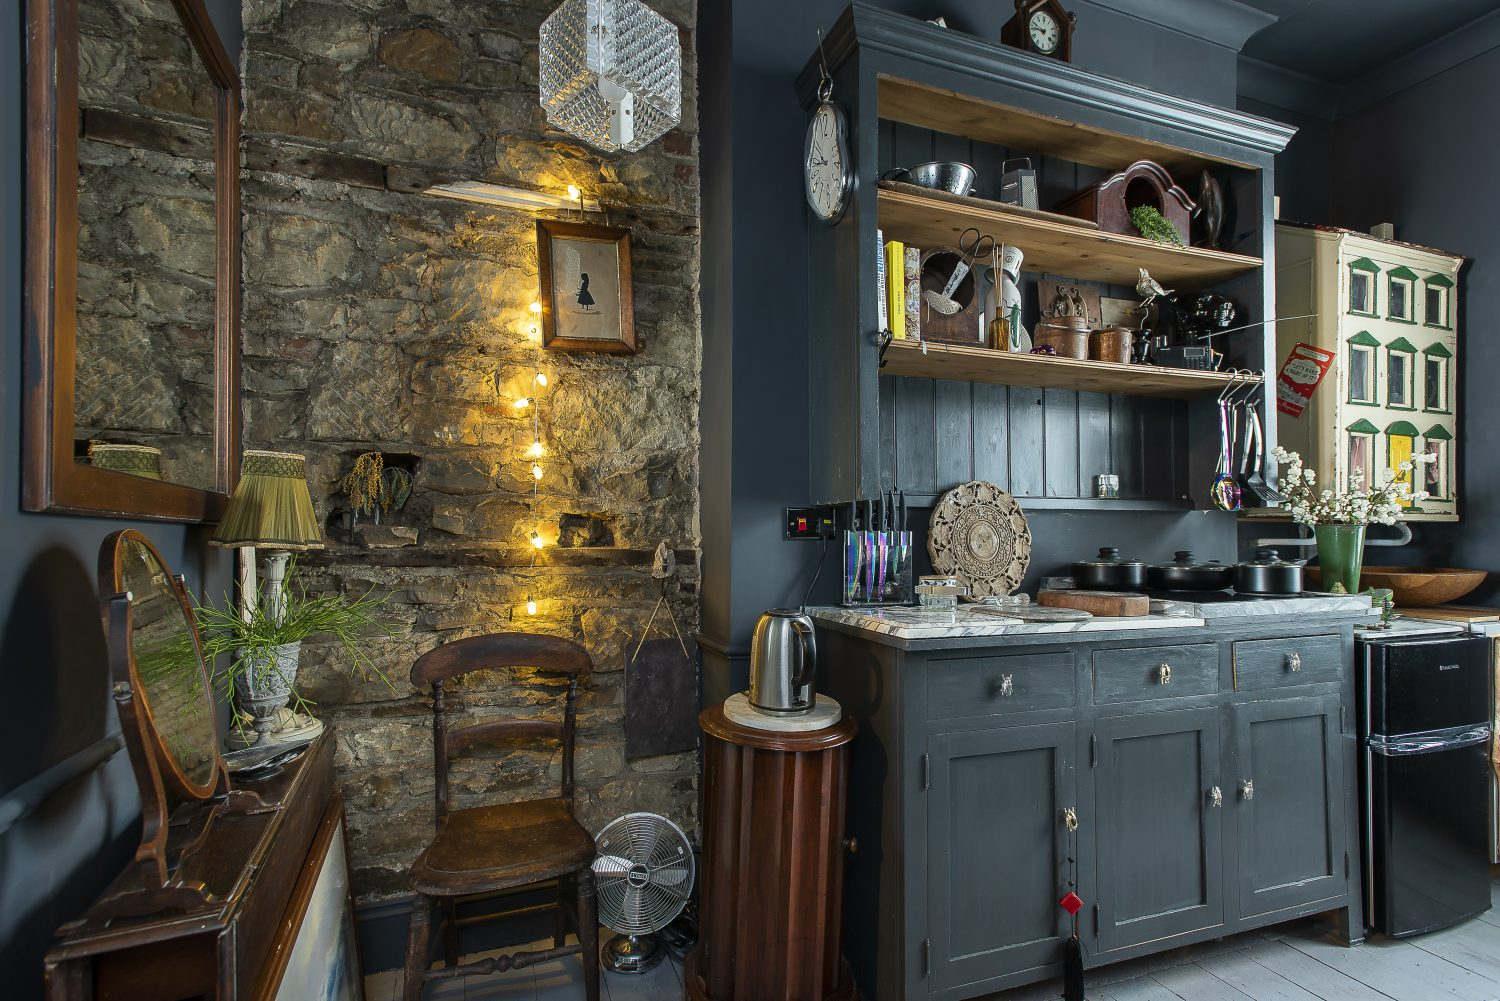 A special feature of the kitchen is the original stone wall, which was revealed when flaking plaster was chipped away